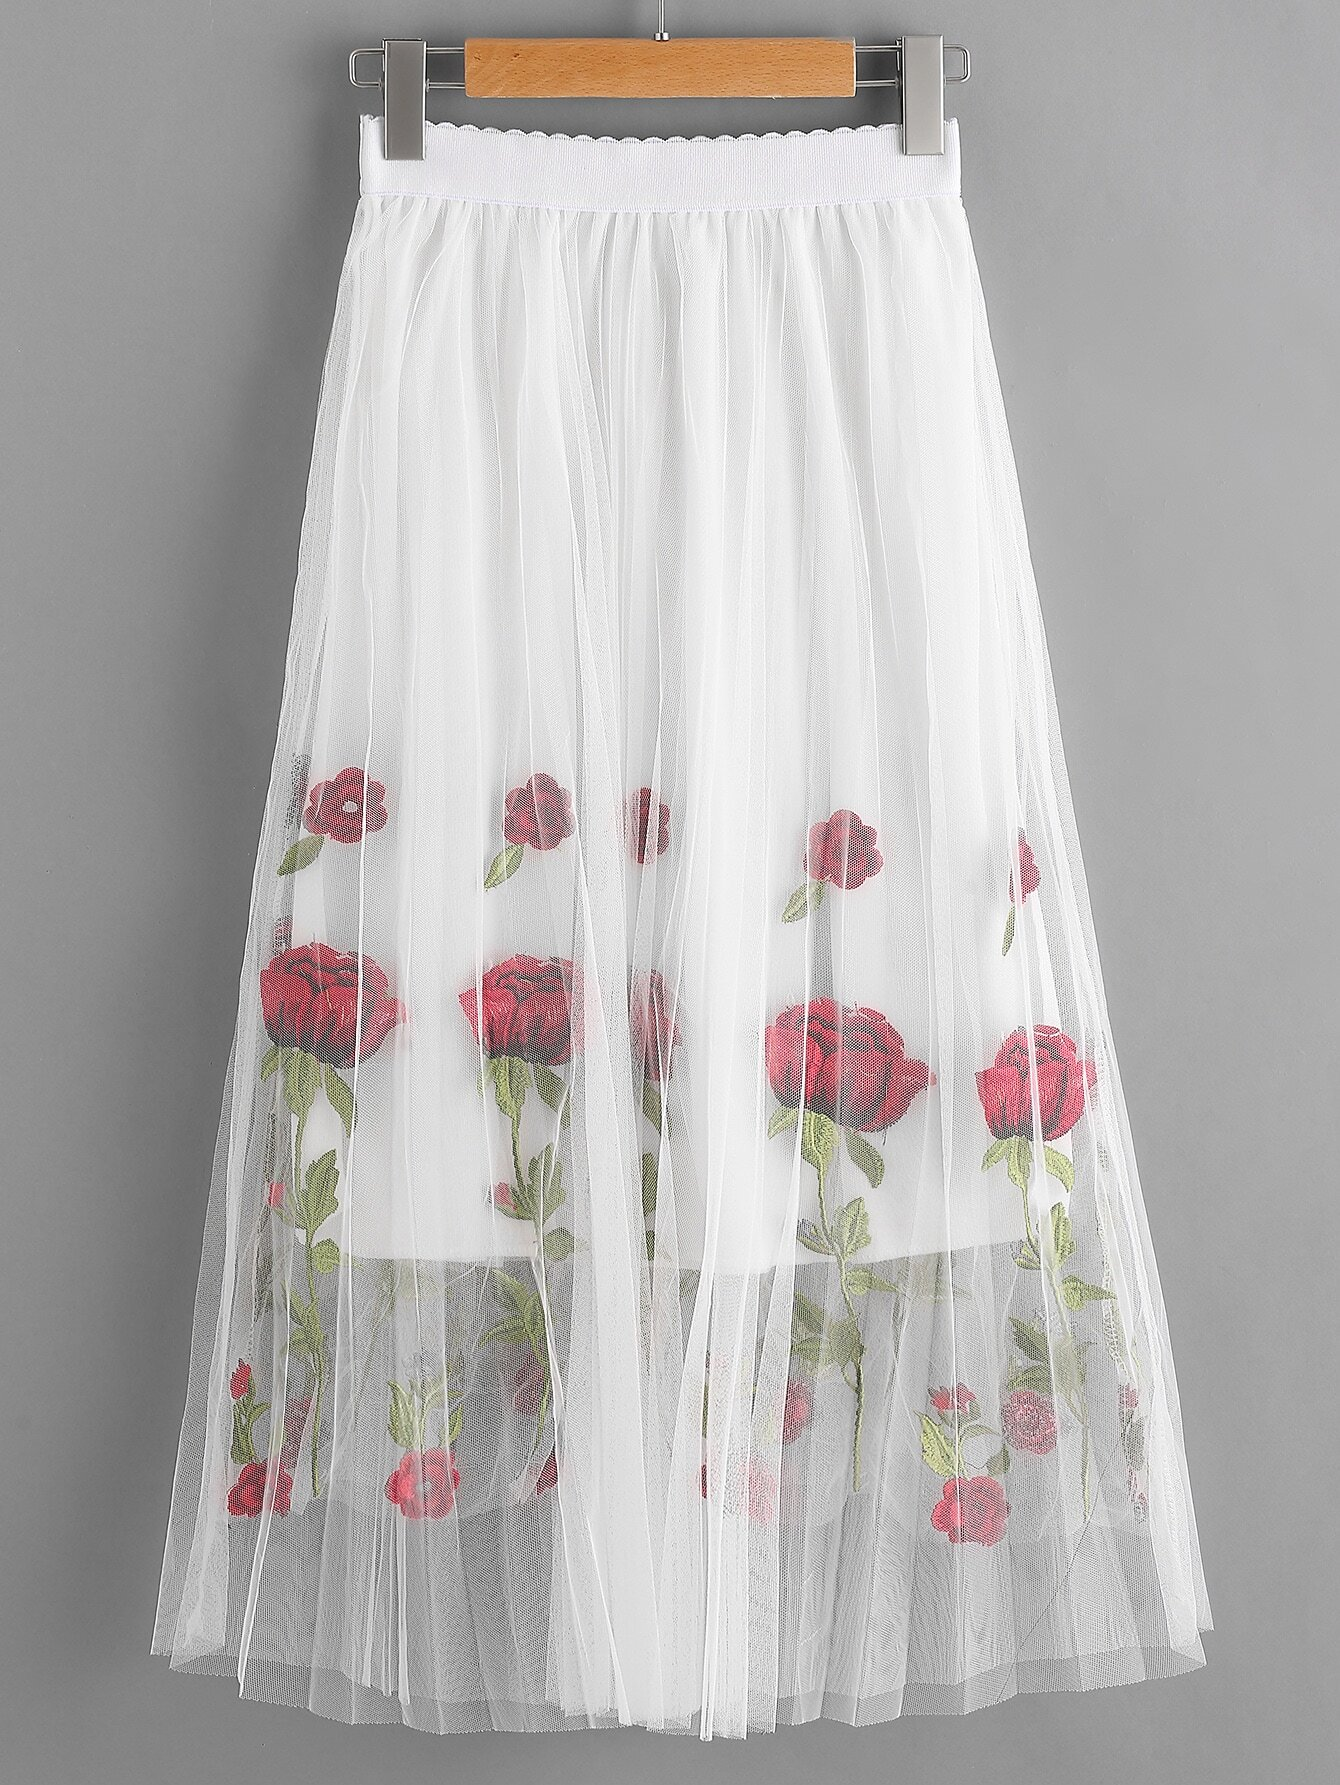 Rose Embroidered Layered Mesh Skirt